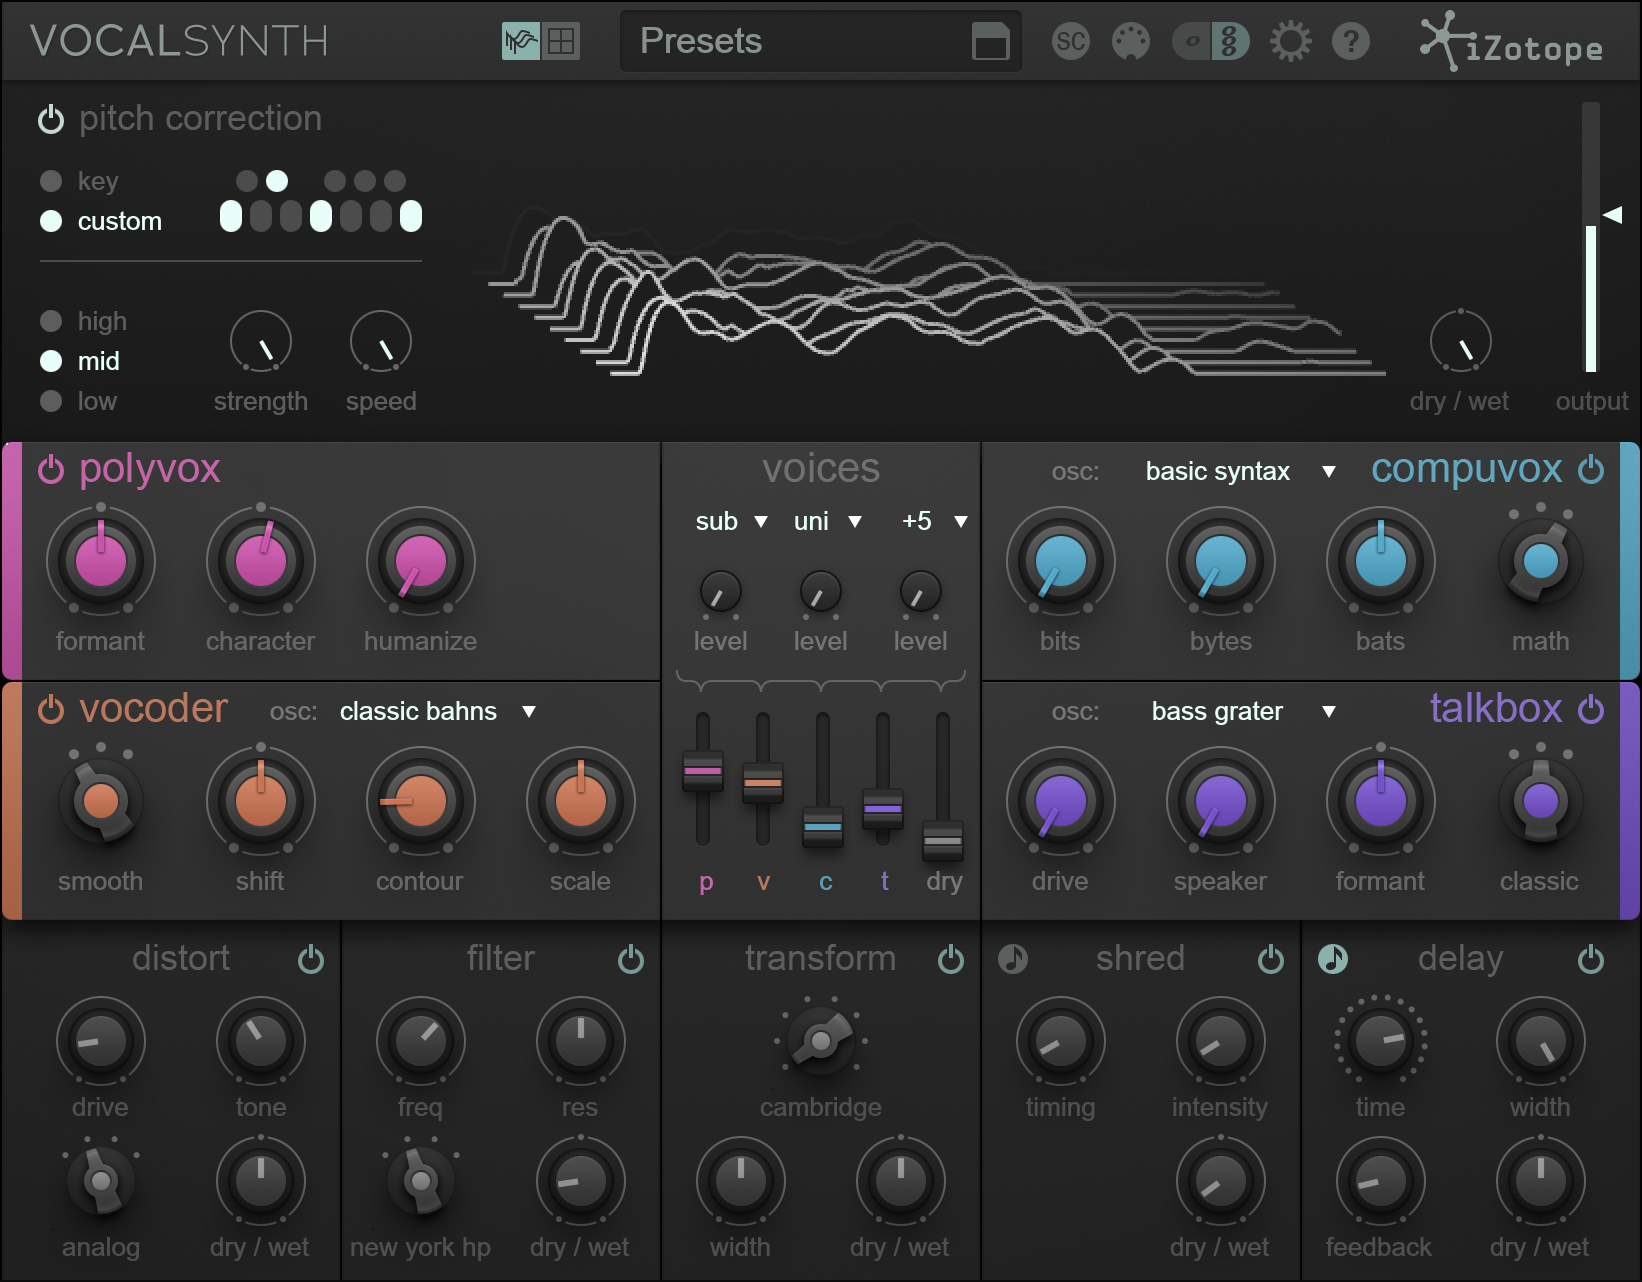 For Press: iZotope VocalSynth